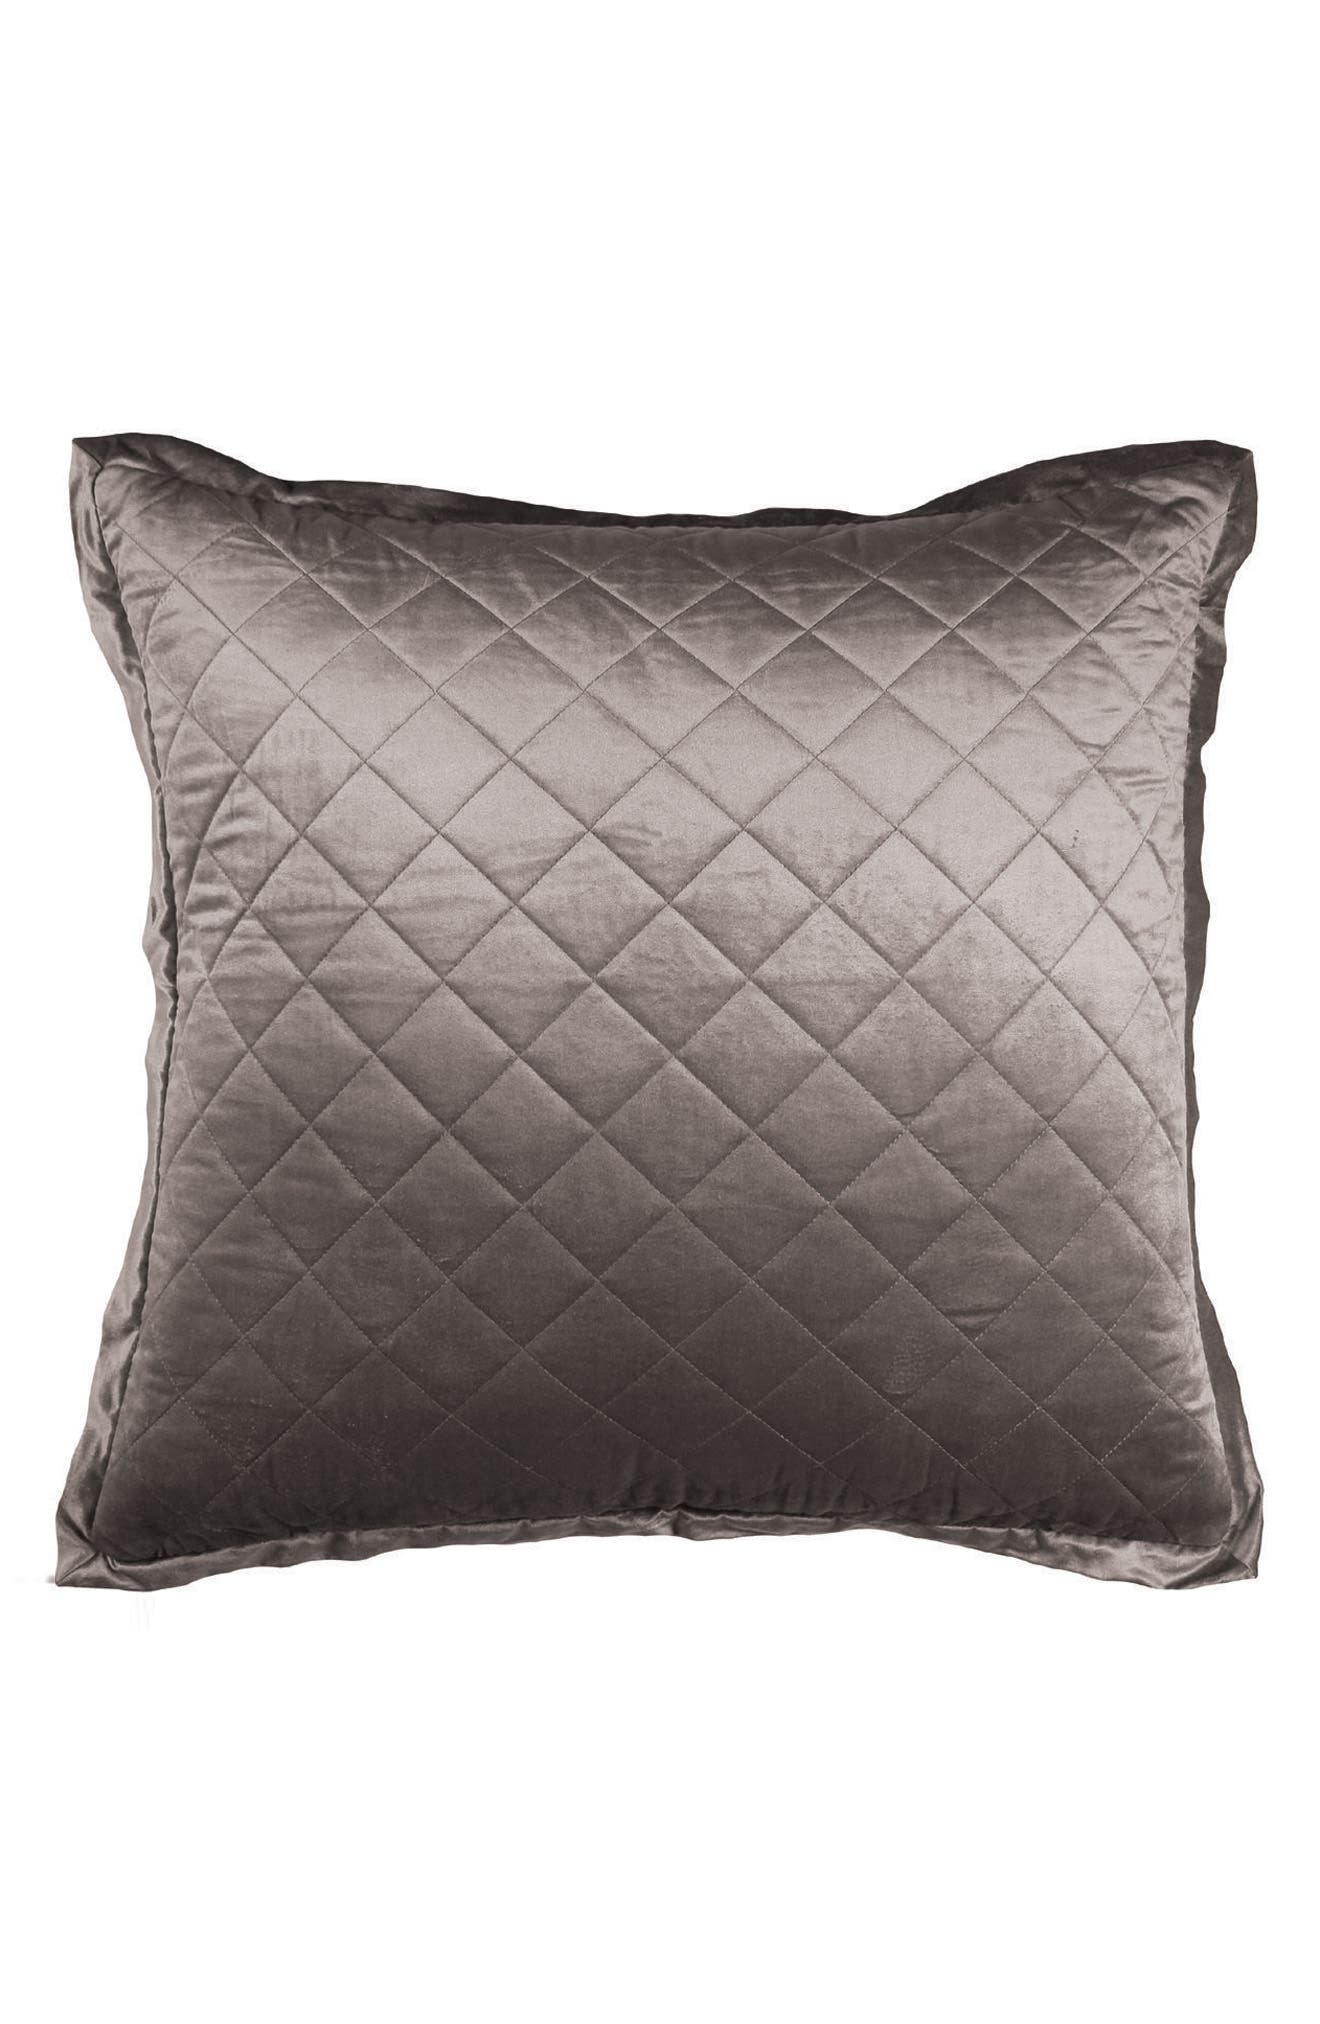 Chloe Quilted Euro Sham,                         Main,                         color, 020